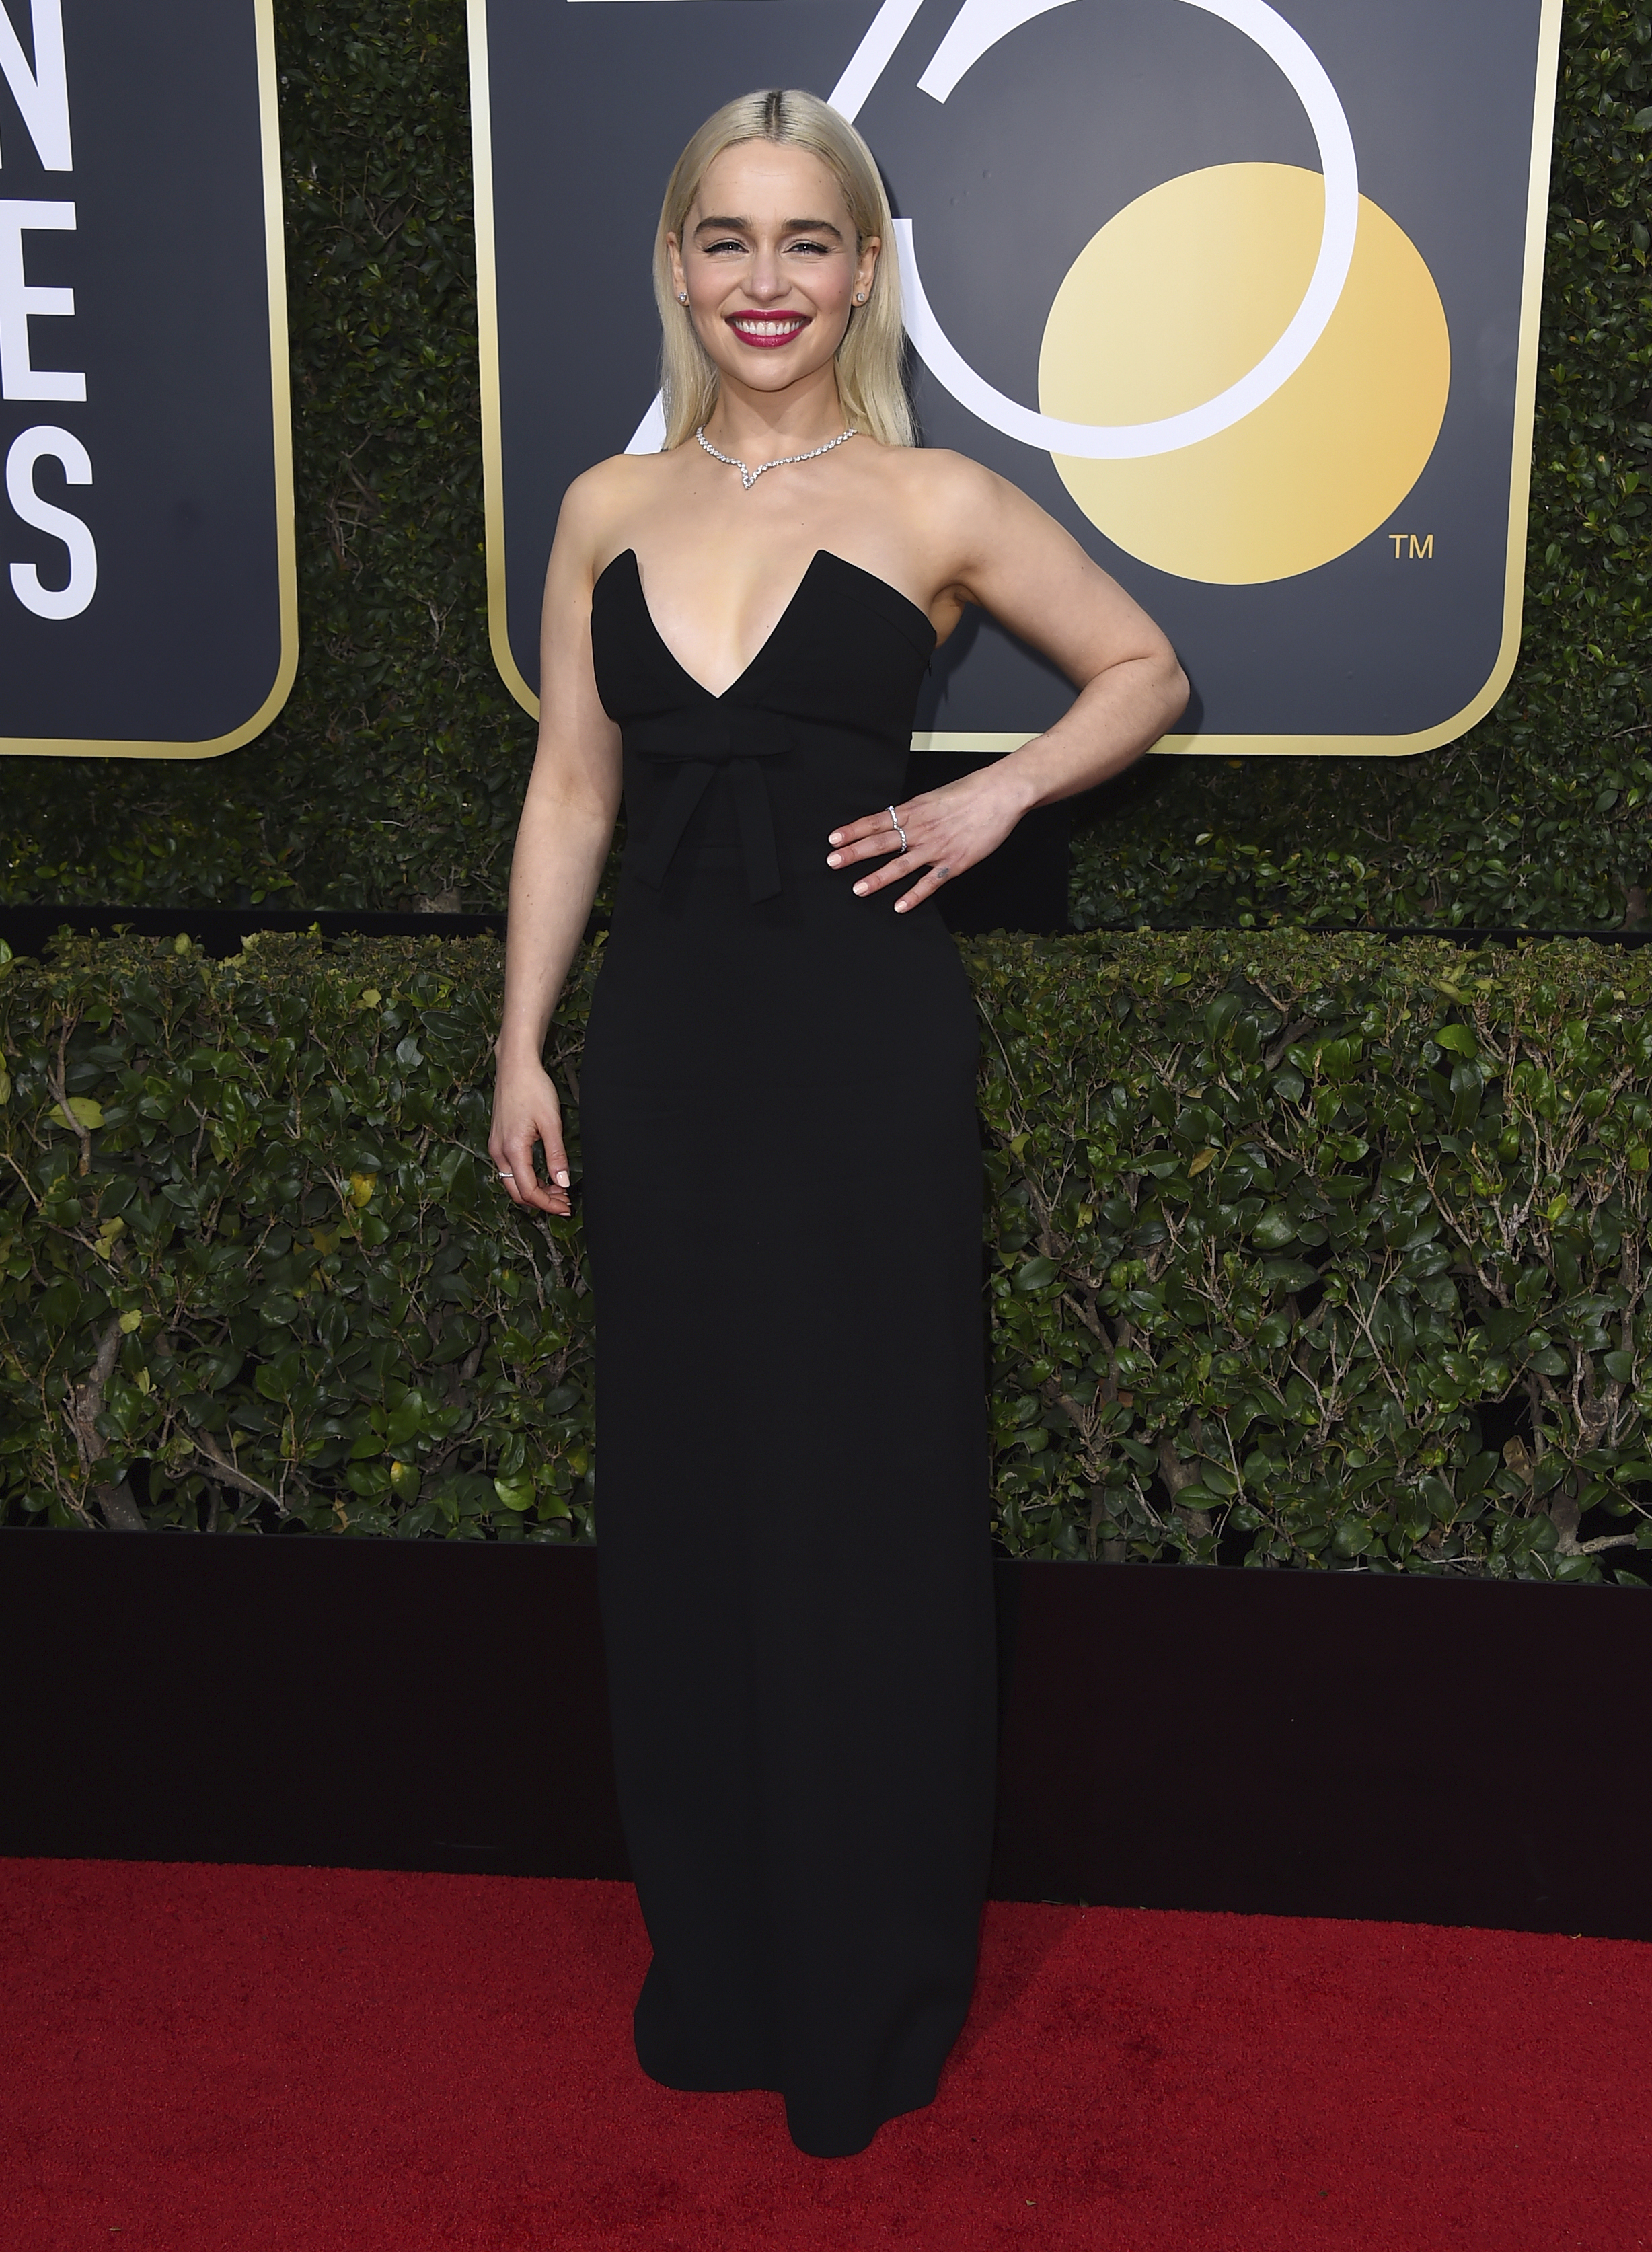 <div class='meta'><div class='origin-logo' data-origin='AP'></div><span class='caption-text' data-credit='Jordan Strauss/Invision/AP'>Emilia Clarke arrives at the 75th annual Golden Globe Awards at the Beverly Hilton Hotel on Sunday, Jan. 7, 2018, in Beverly Hills, Calif.</span></div>